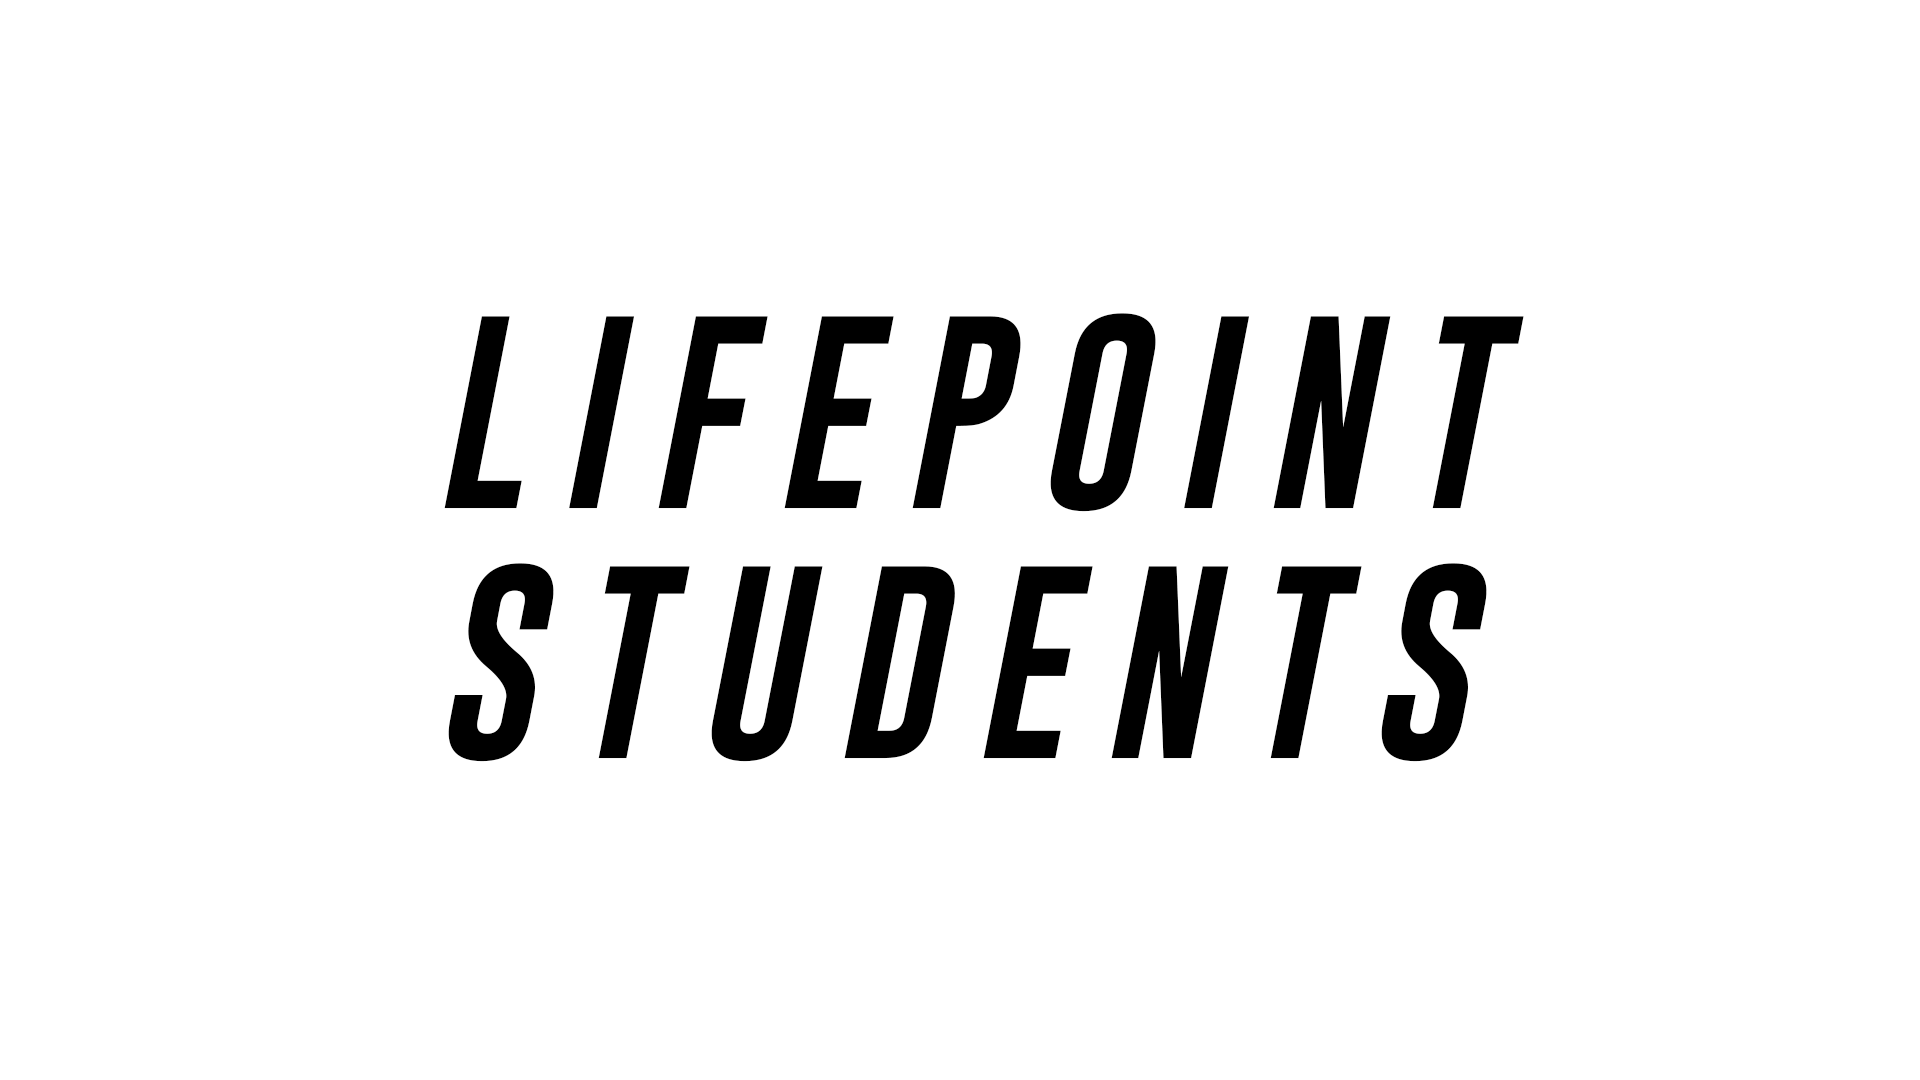 Lifepoint students black on white  1